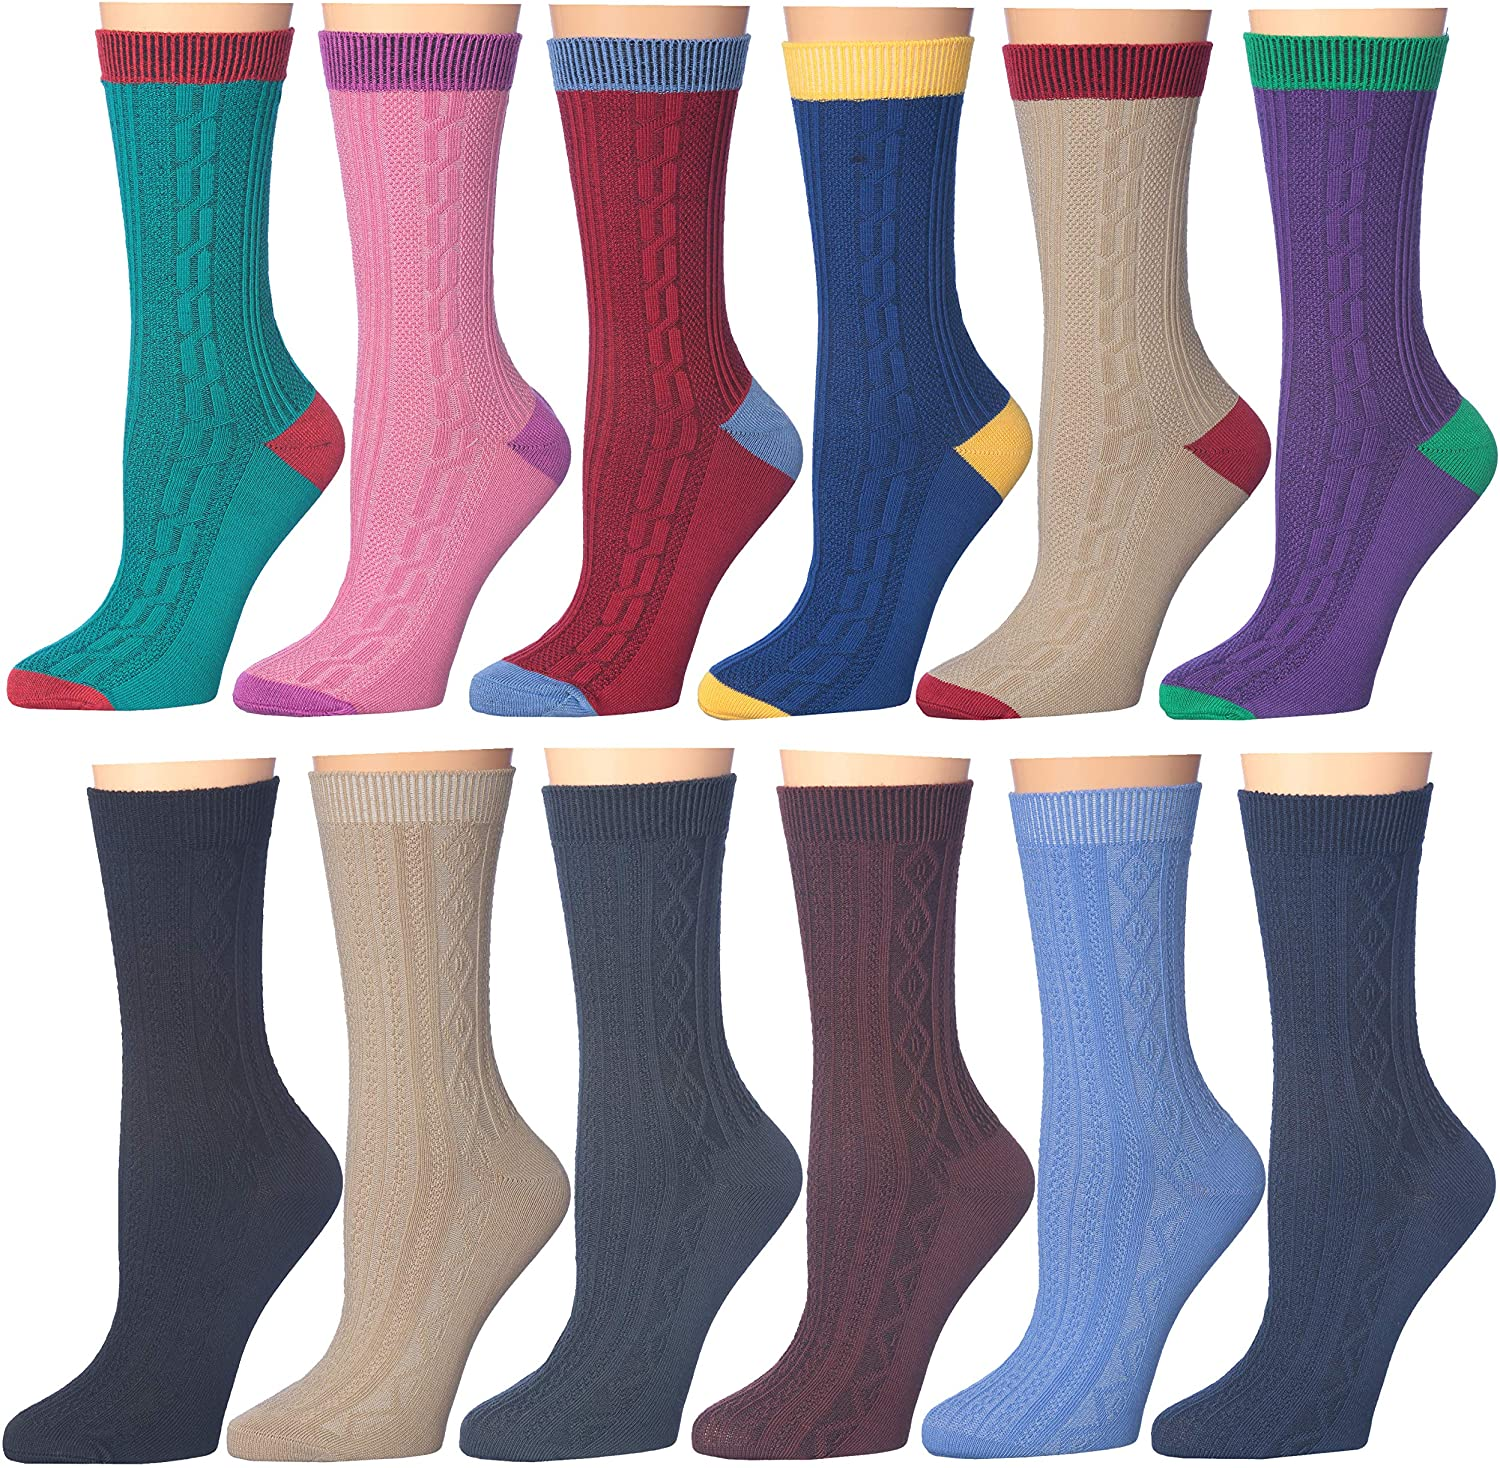 12 Pack Women's Colorful Patterned Cute Funny Casual Fashion Crew Socks by Frenchic